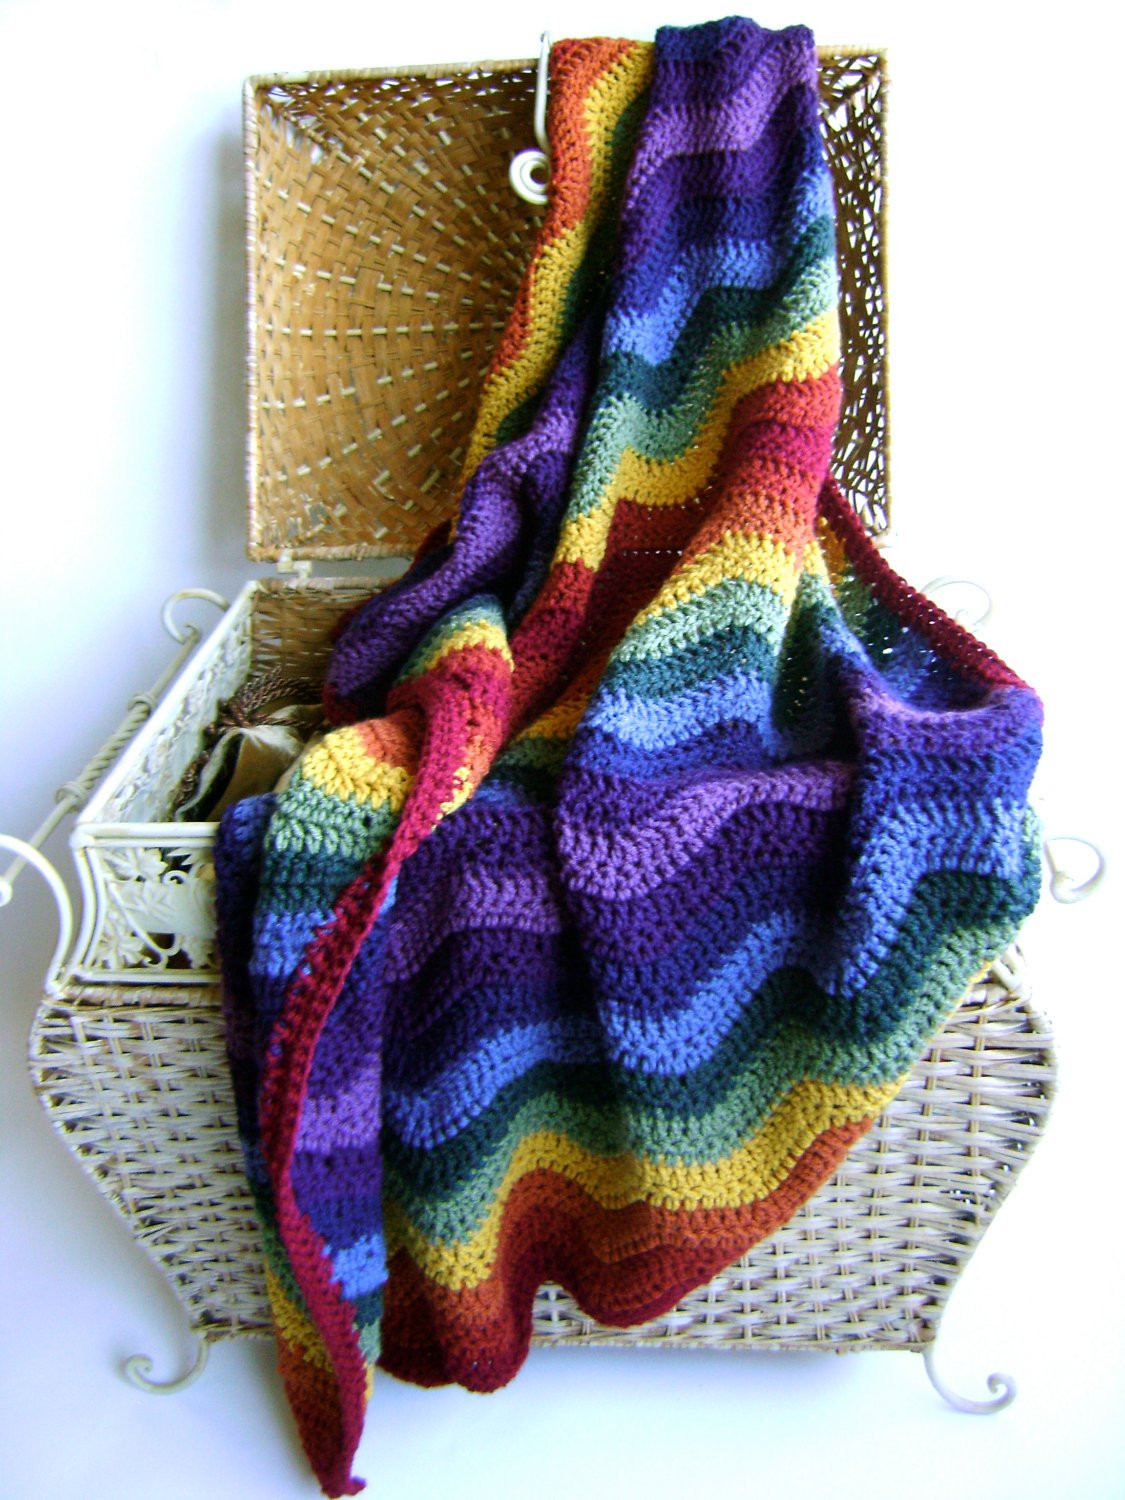 Crochet Pattern for Rainbow Ripple Baby Blanket Easy